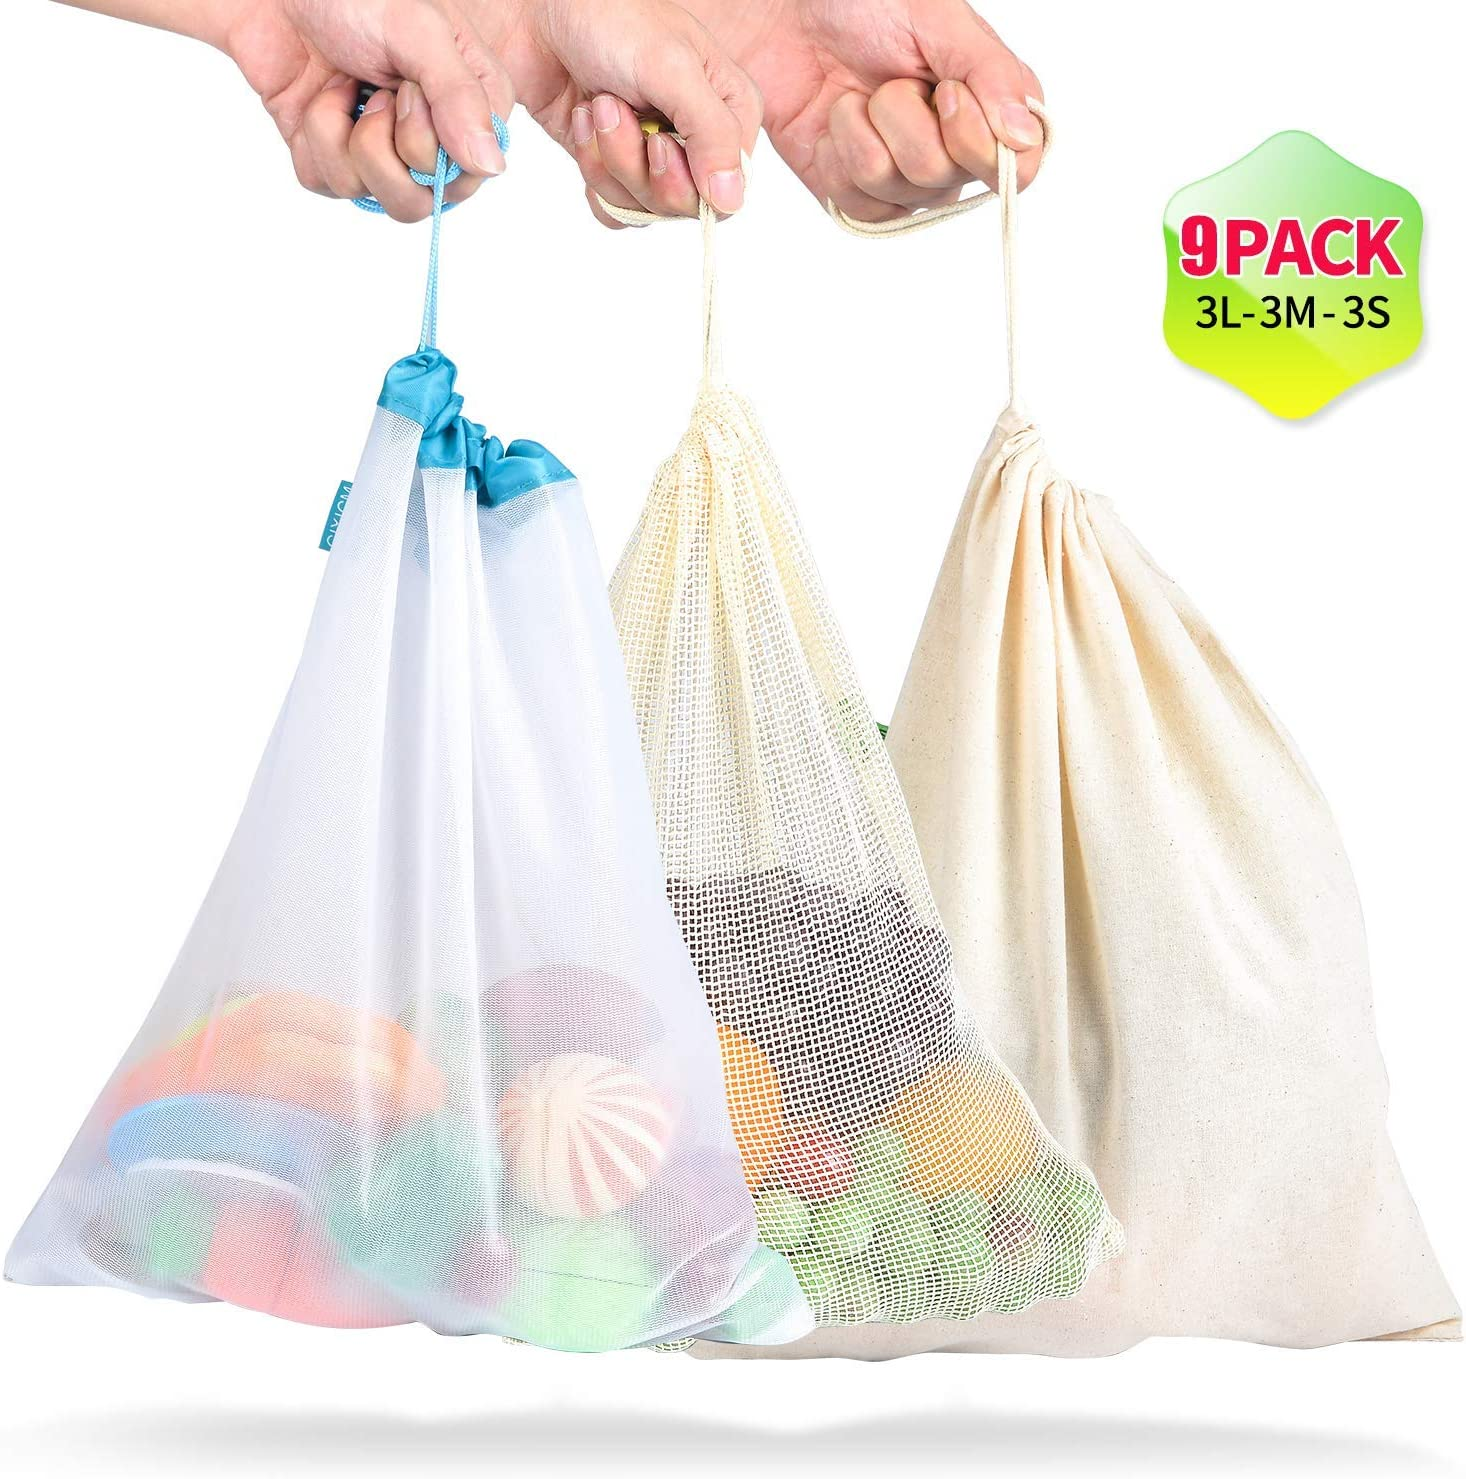 Cotton Mesh Produce Bags | 9Pcs Vegetable Bags | Reusable Mesh Grocery Bags with Drawstring | See-Through | Ecofriendly | Washable | Lightweight | Keeping Fruits & Veggie Fresh